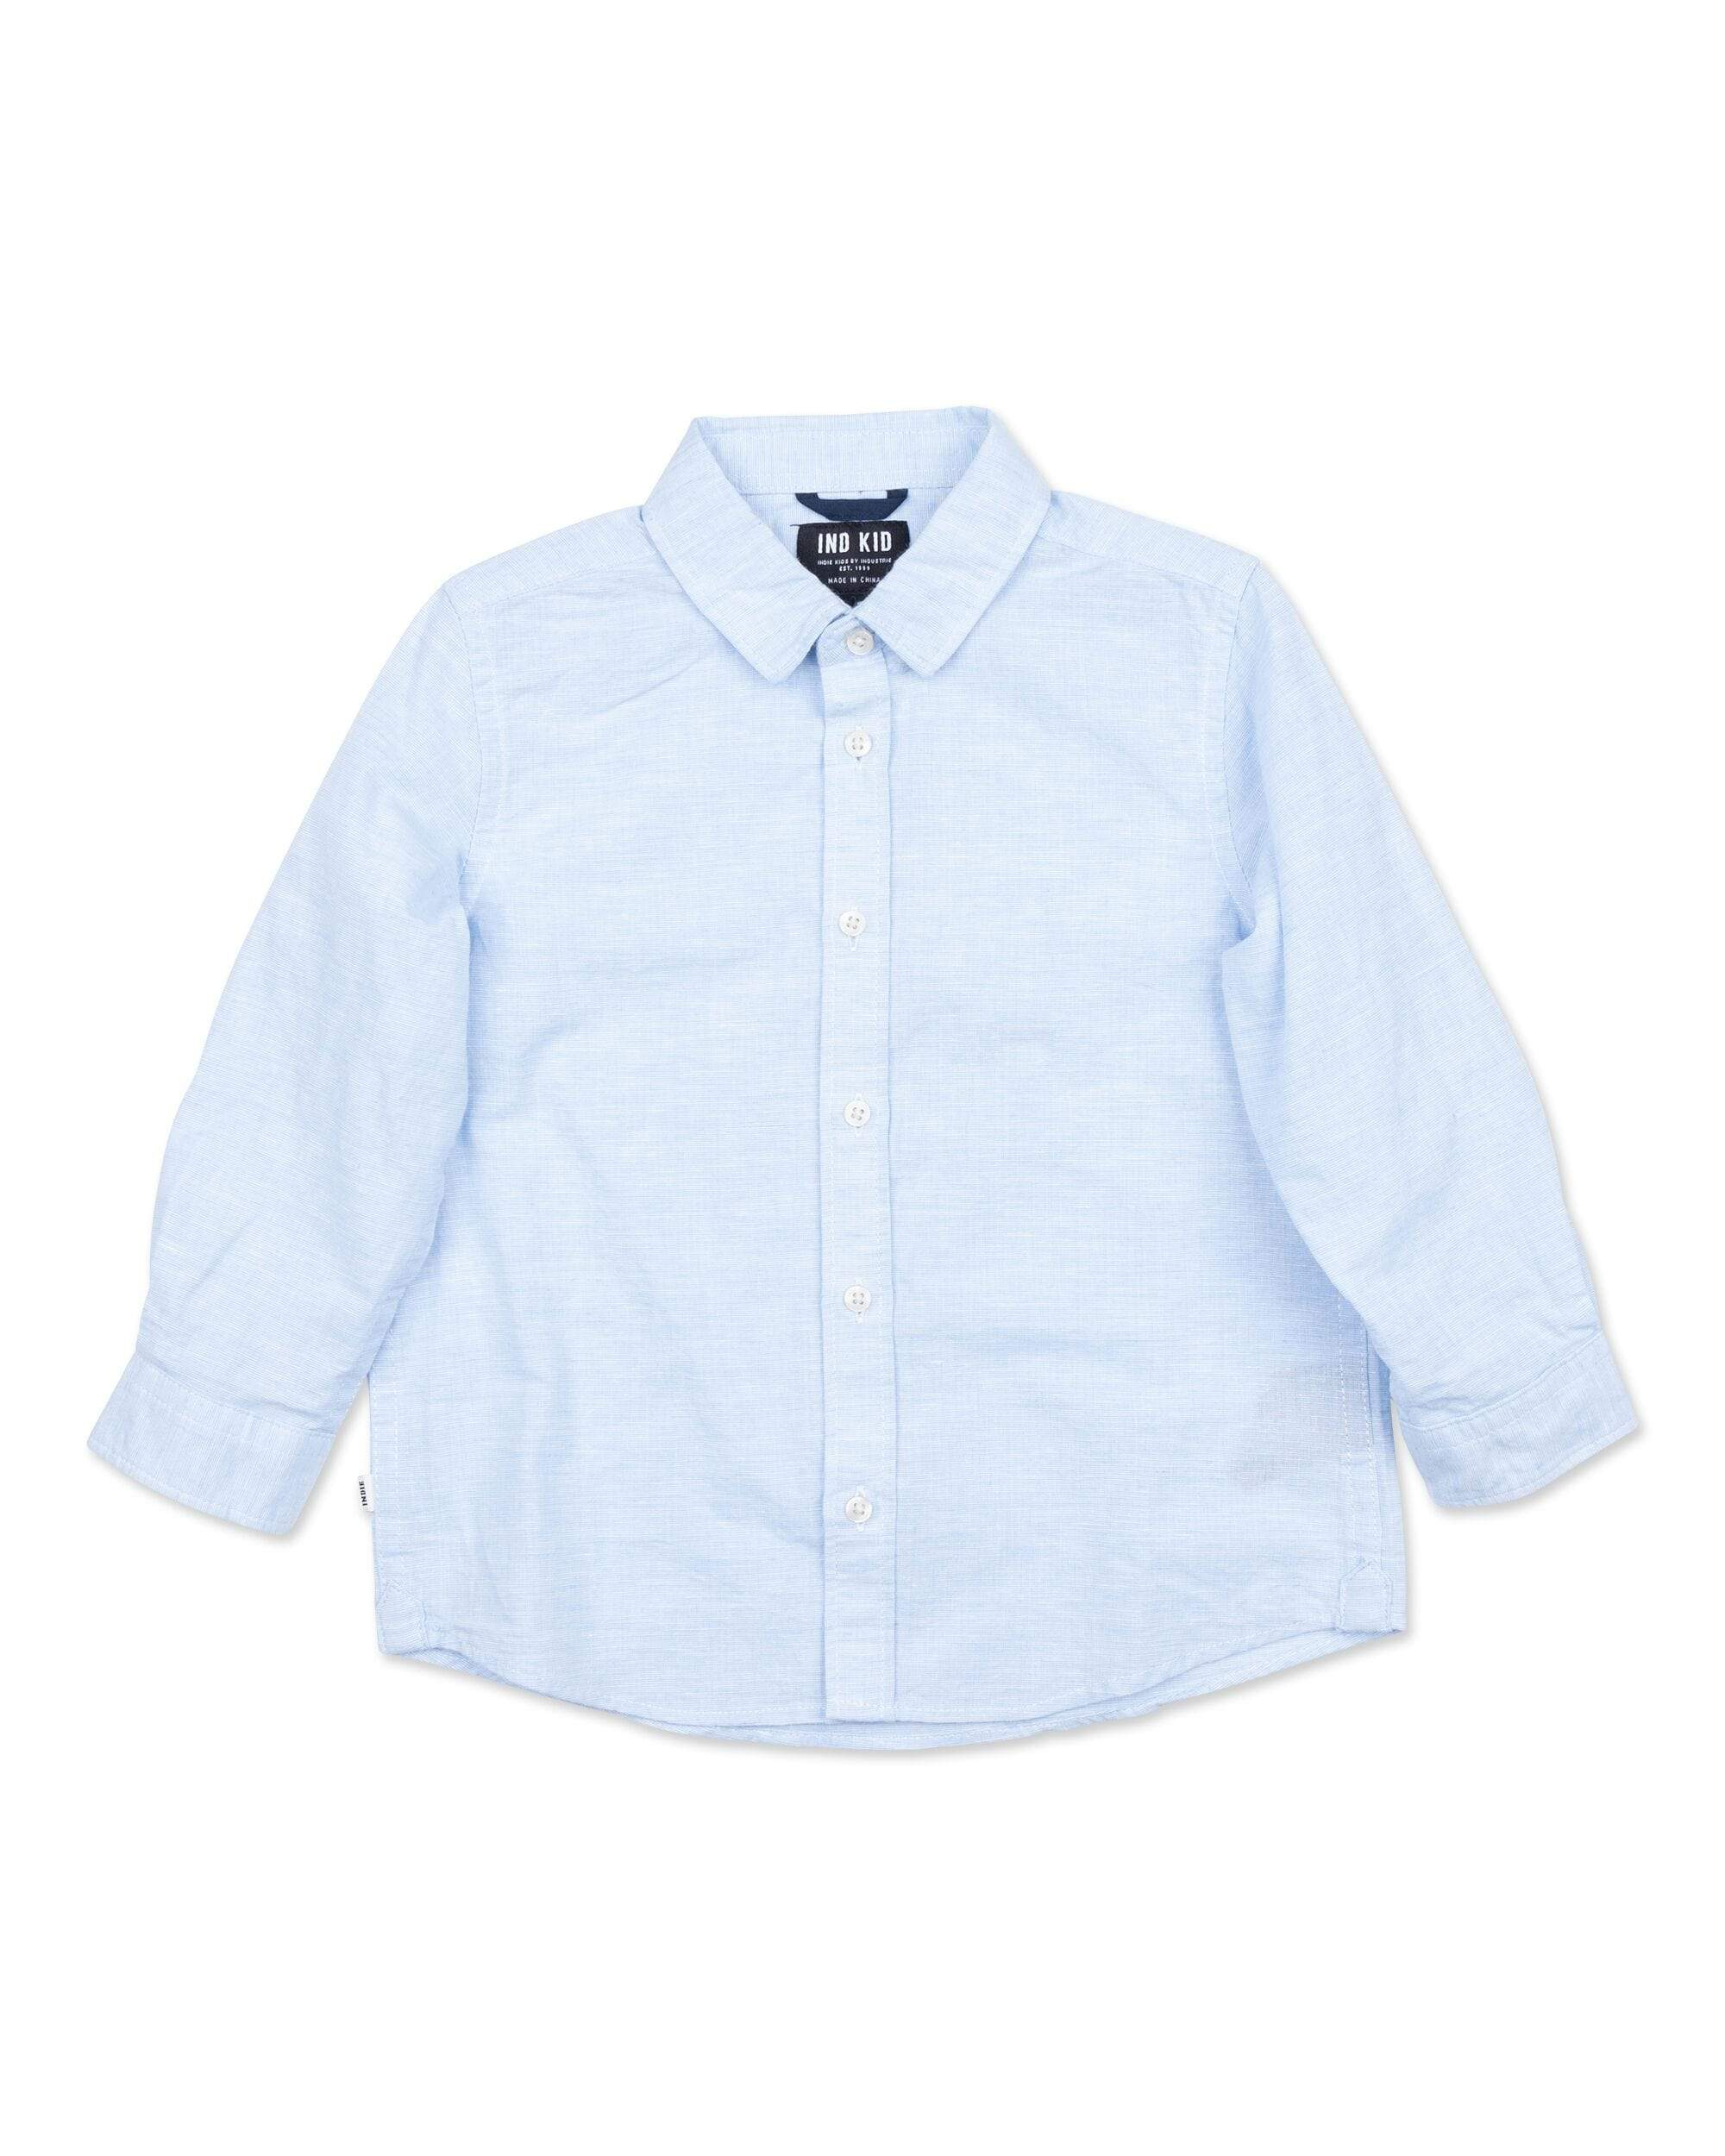 Indie Kids Shirt 00 Indie Kids Rickard LS Shirt Lt Blue